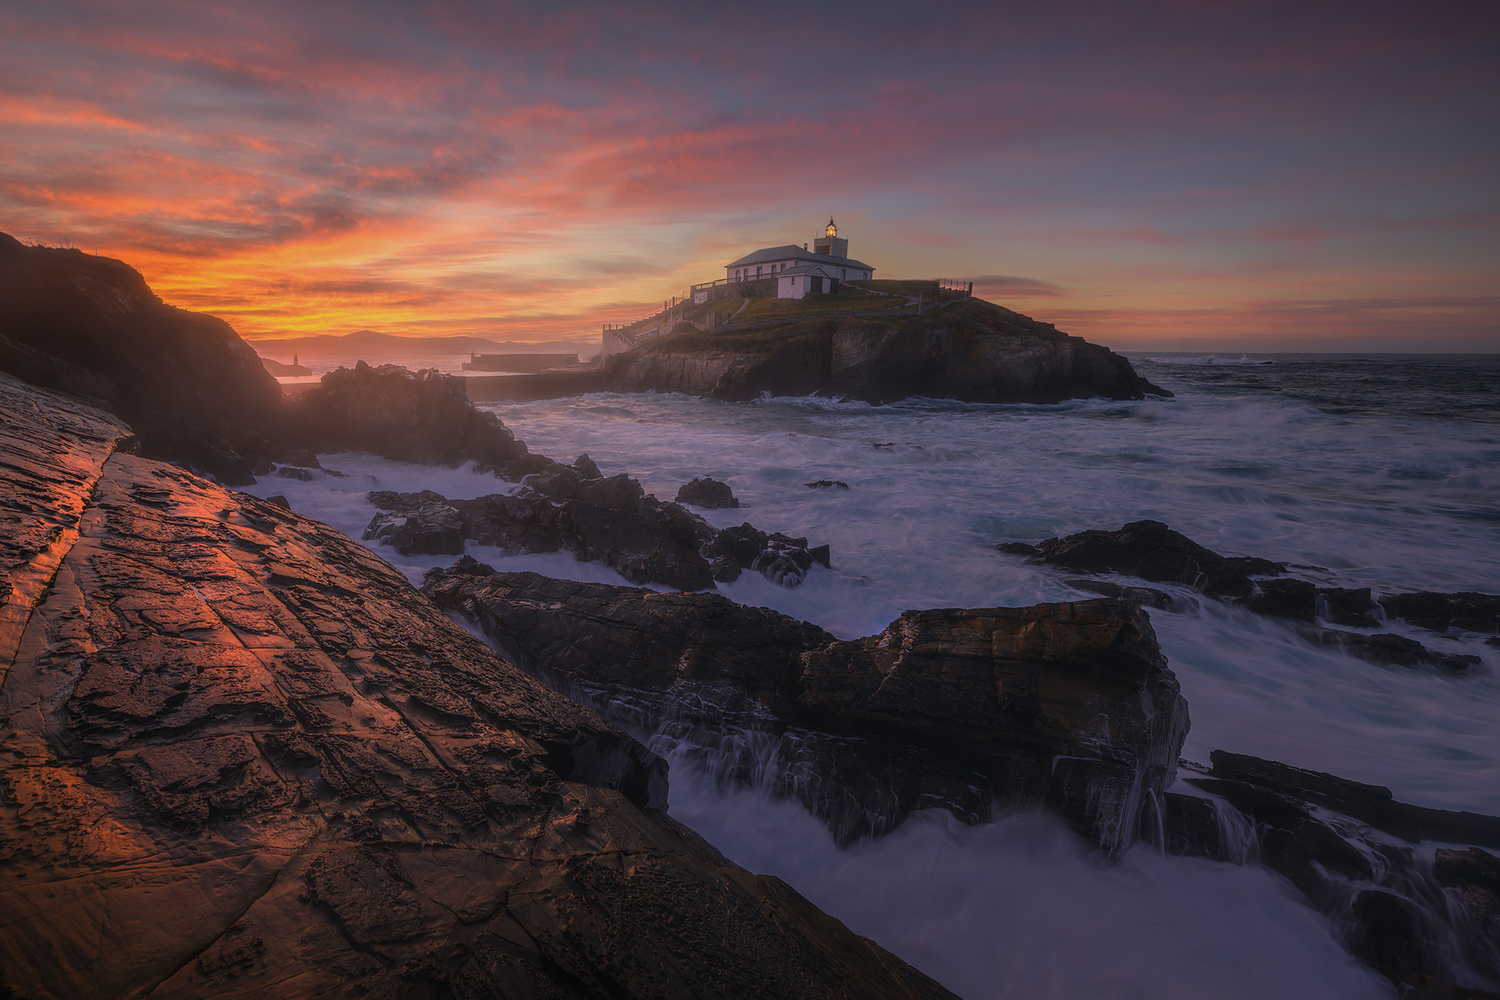 sunset in the lighthouse by alfonso maseda varela